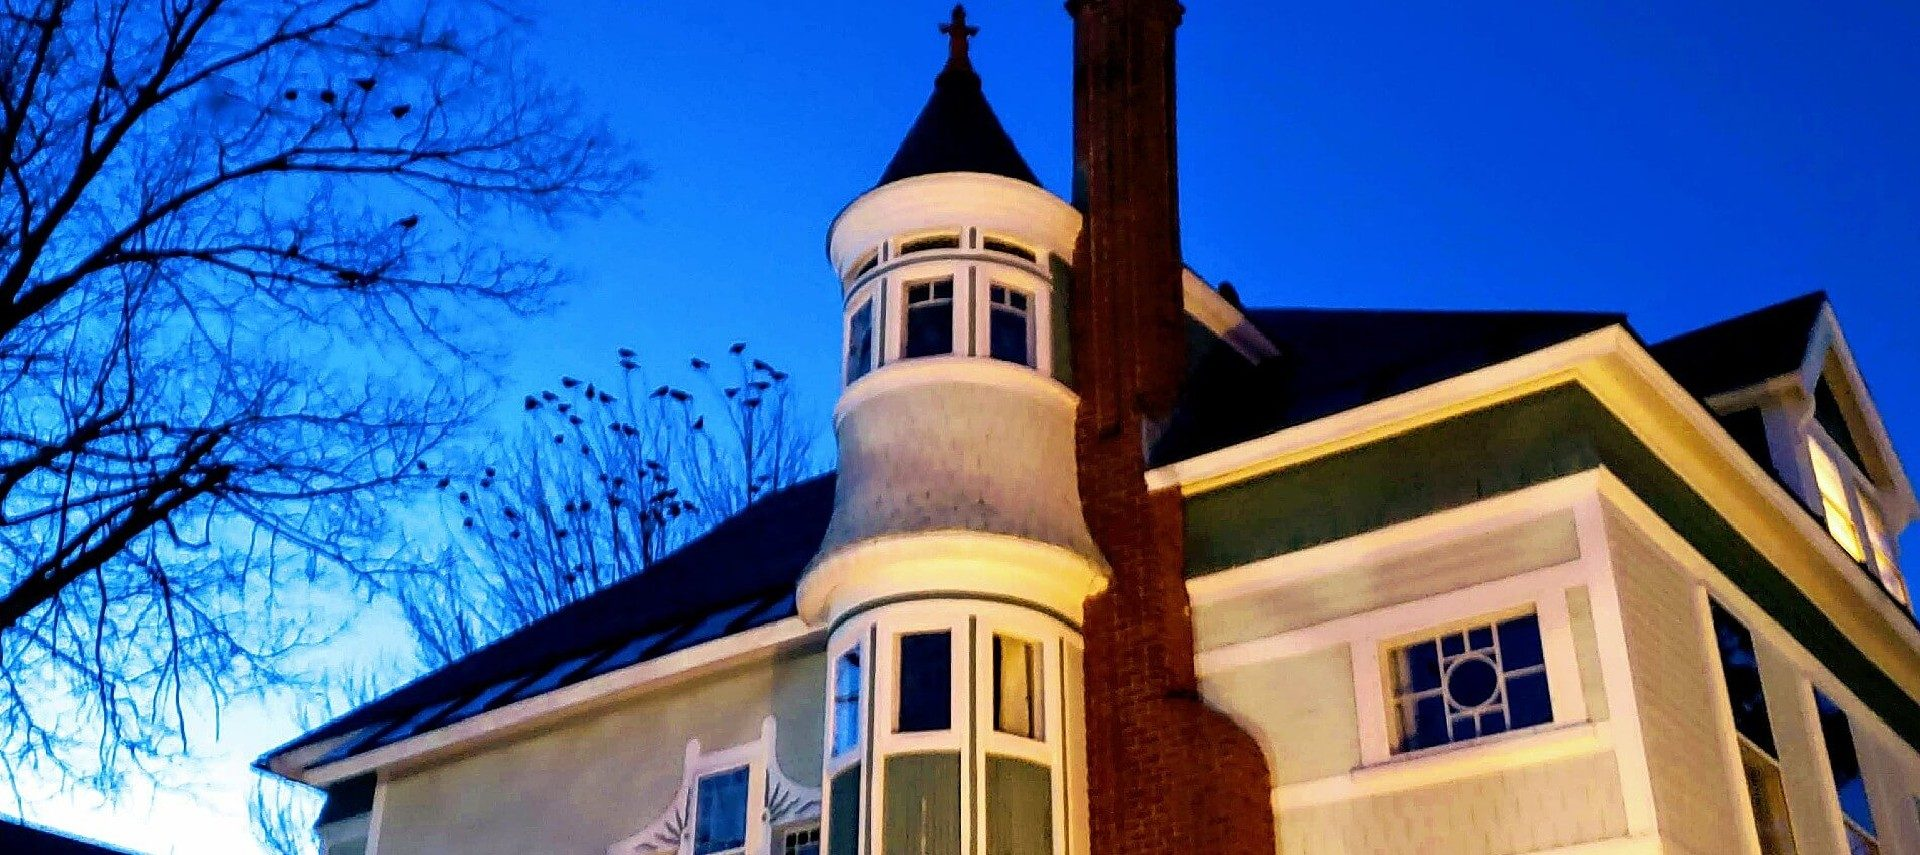 Top corner view of a home featuring red brick fireplace and dome with spire top against a blue sky at dusk